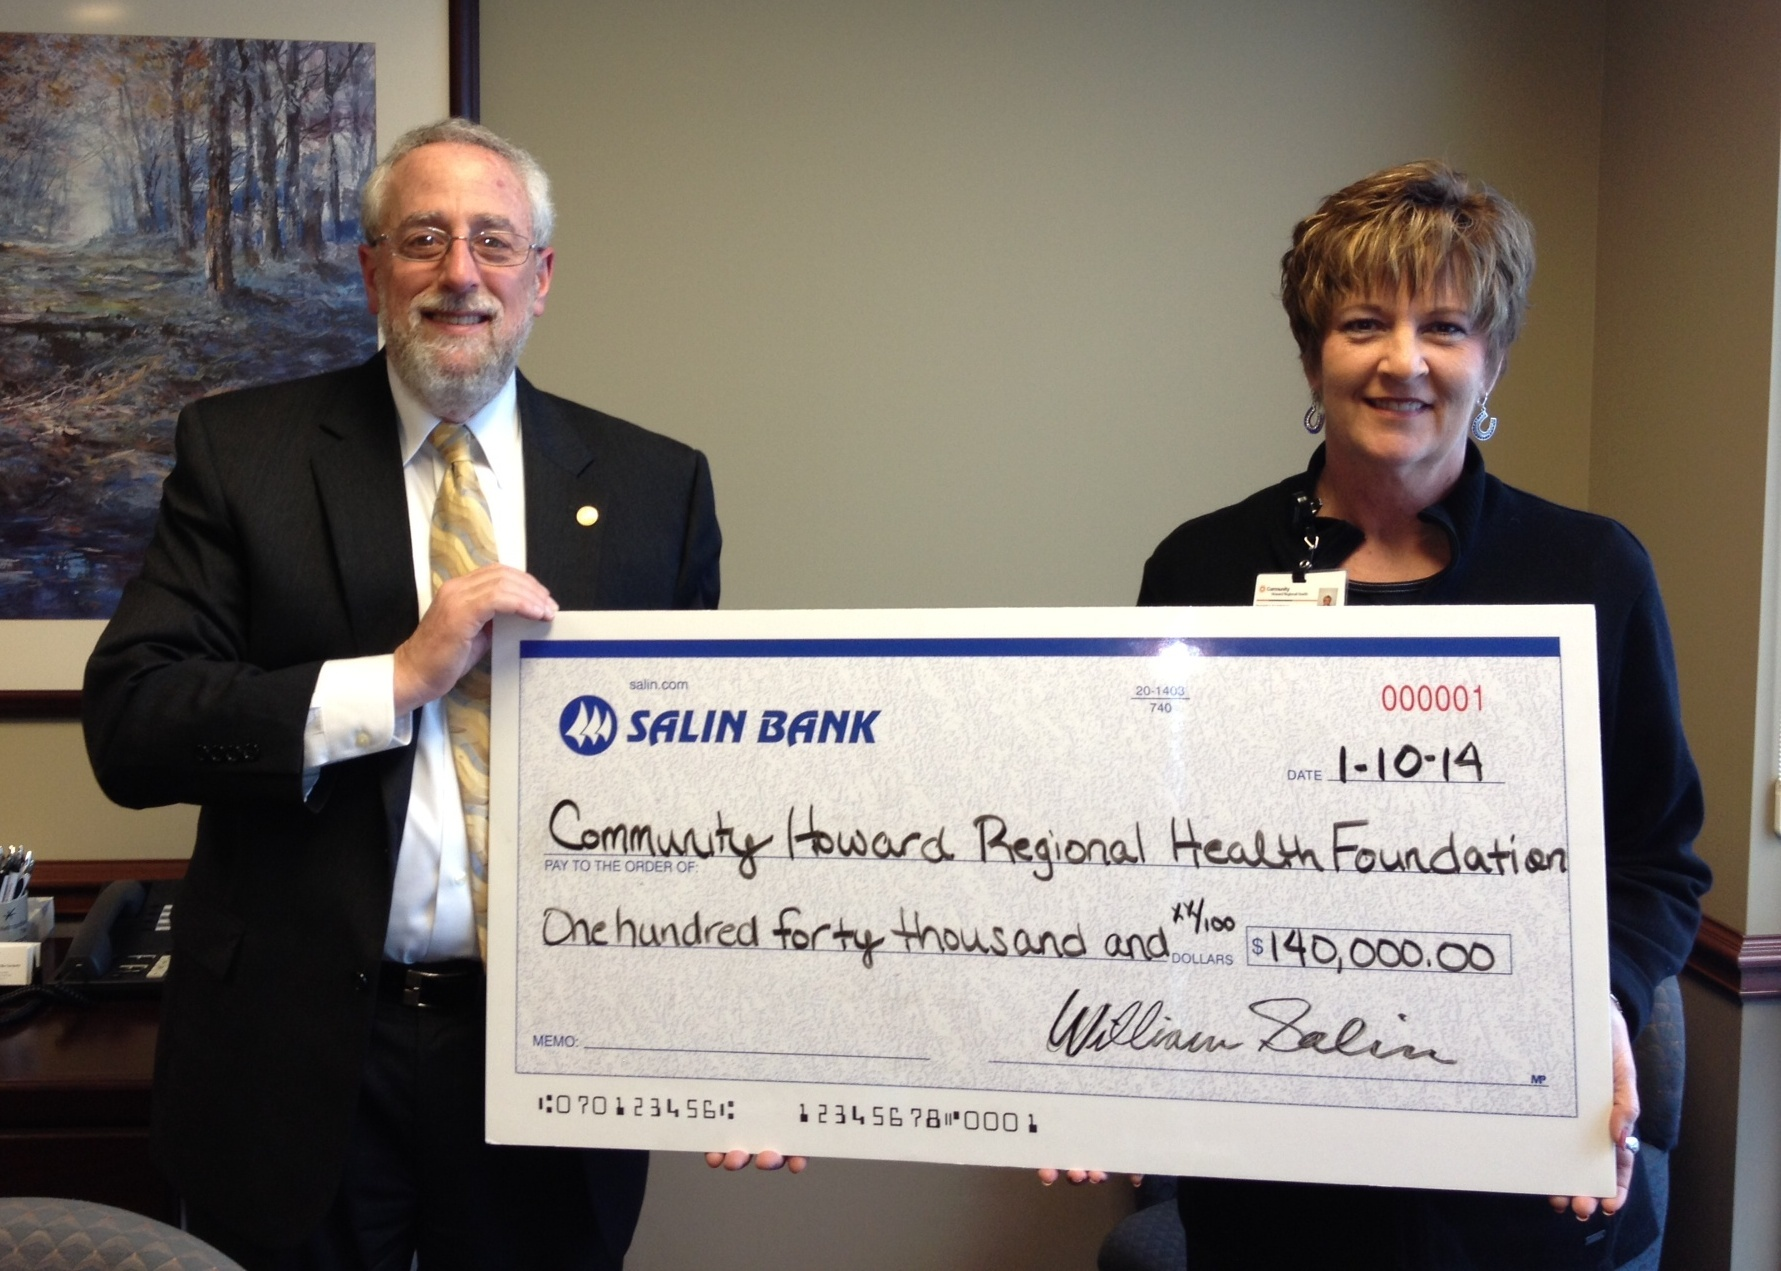 Ray Gusky, Executive Vice President and Chief Financial Officer for the Salin Bank & Trust Company Presents a symbolic check to Rhonda Eastman, director of the Community Howard Regional Health Foundation. (Photo: Business Wire)